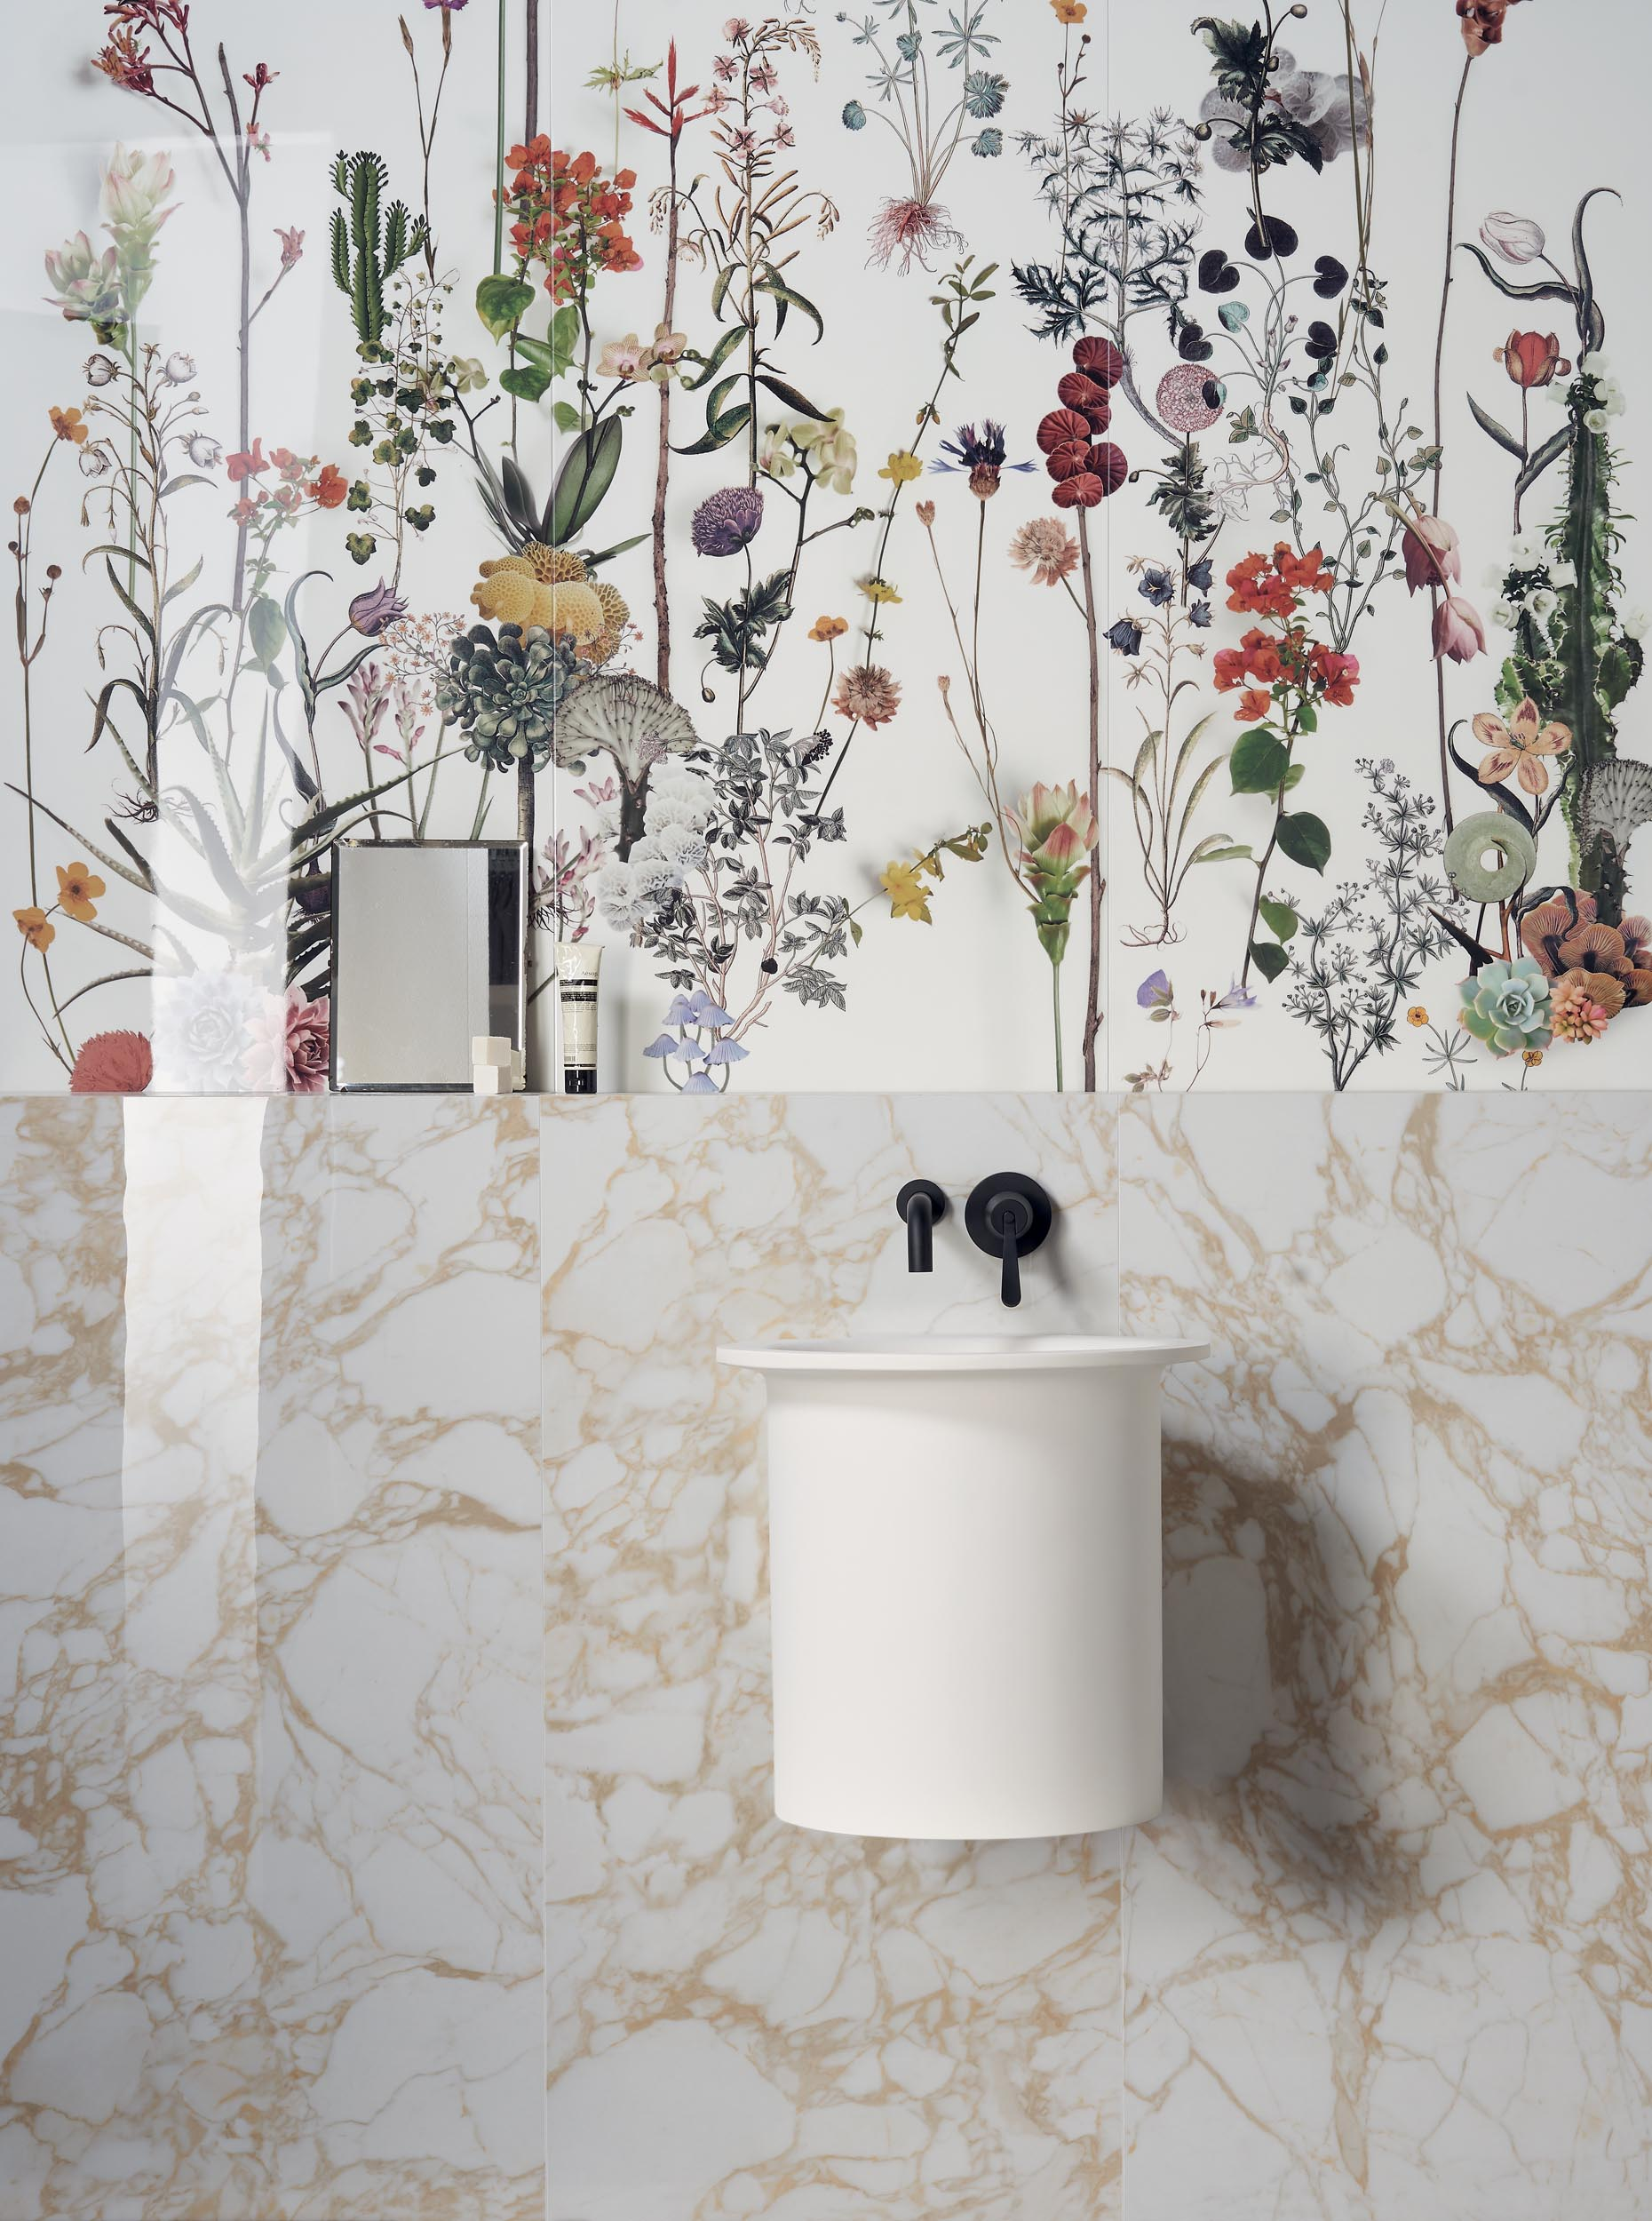 """Wall Paper41 Lux Franz 60x120 24""""x48"""" / Pulp Gold Double Polished 60x120 24""""x48"""""""